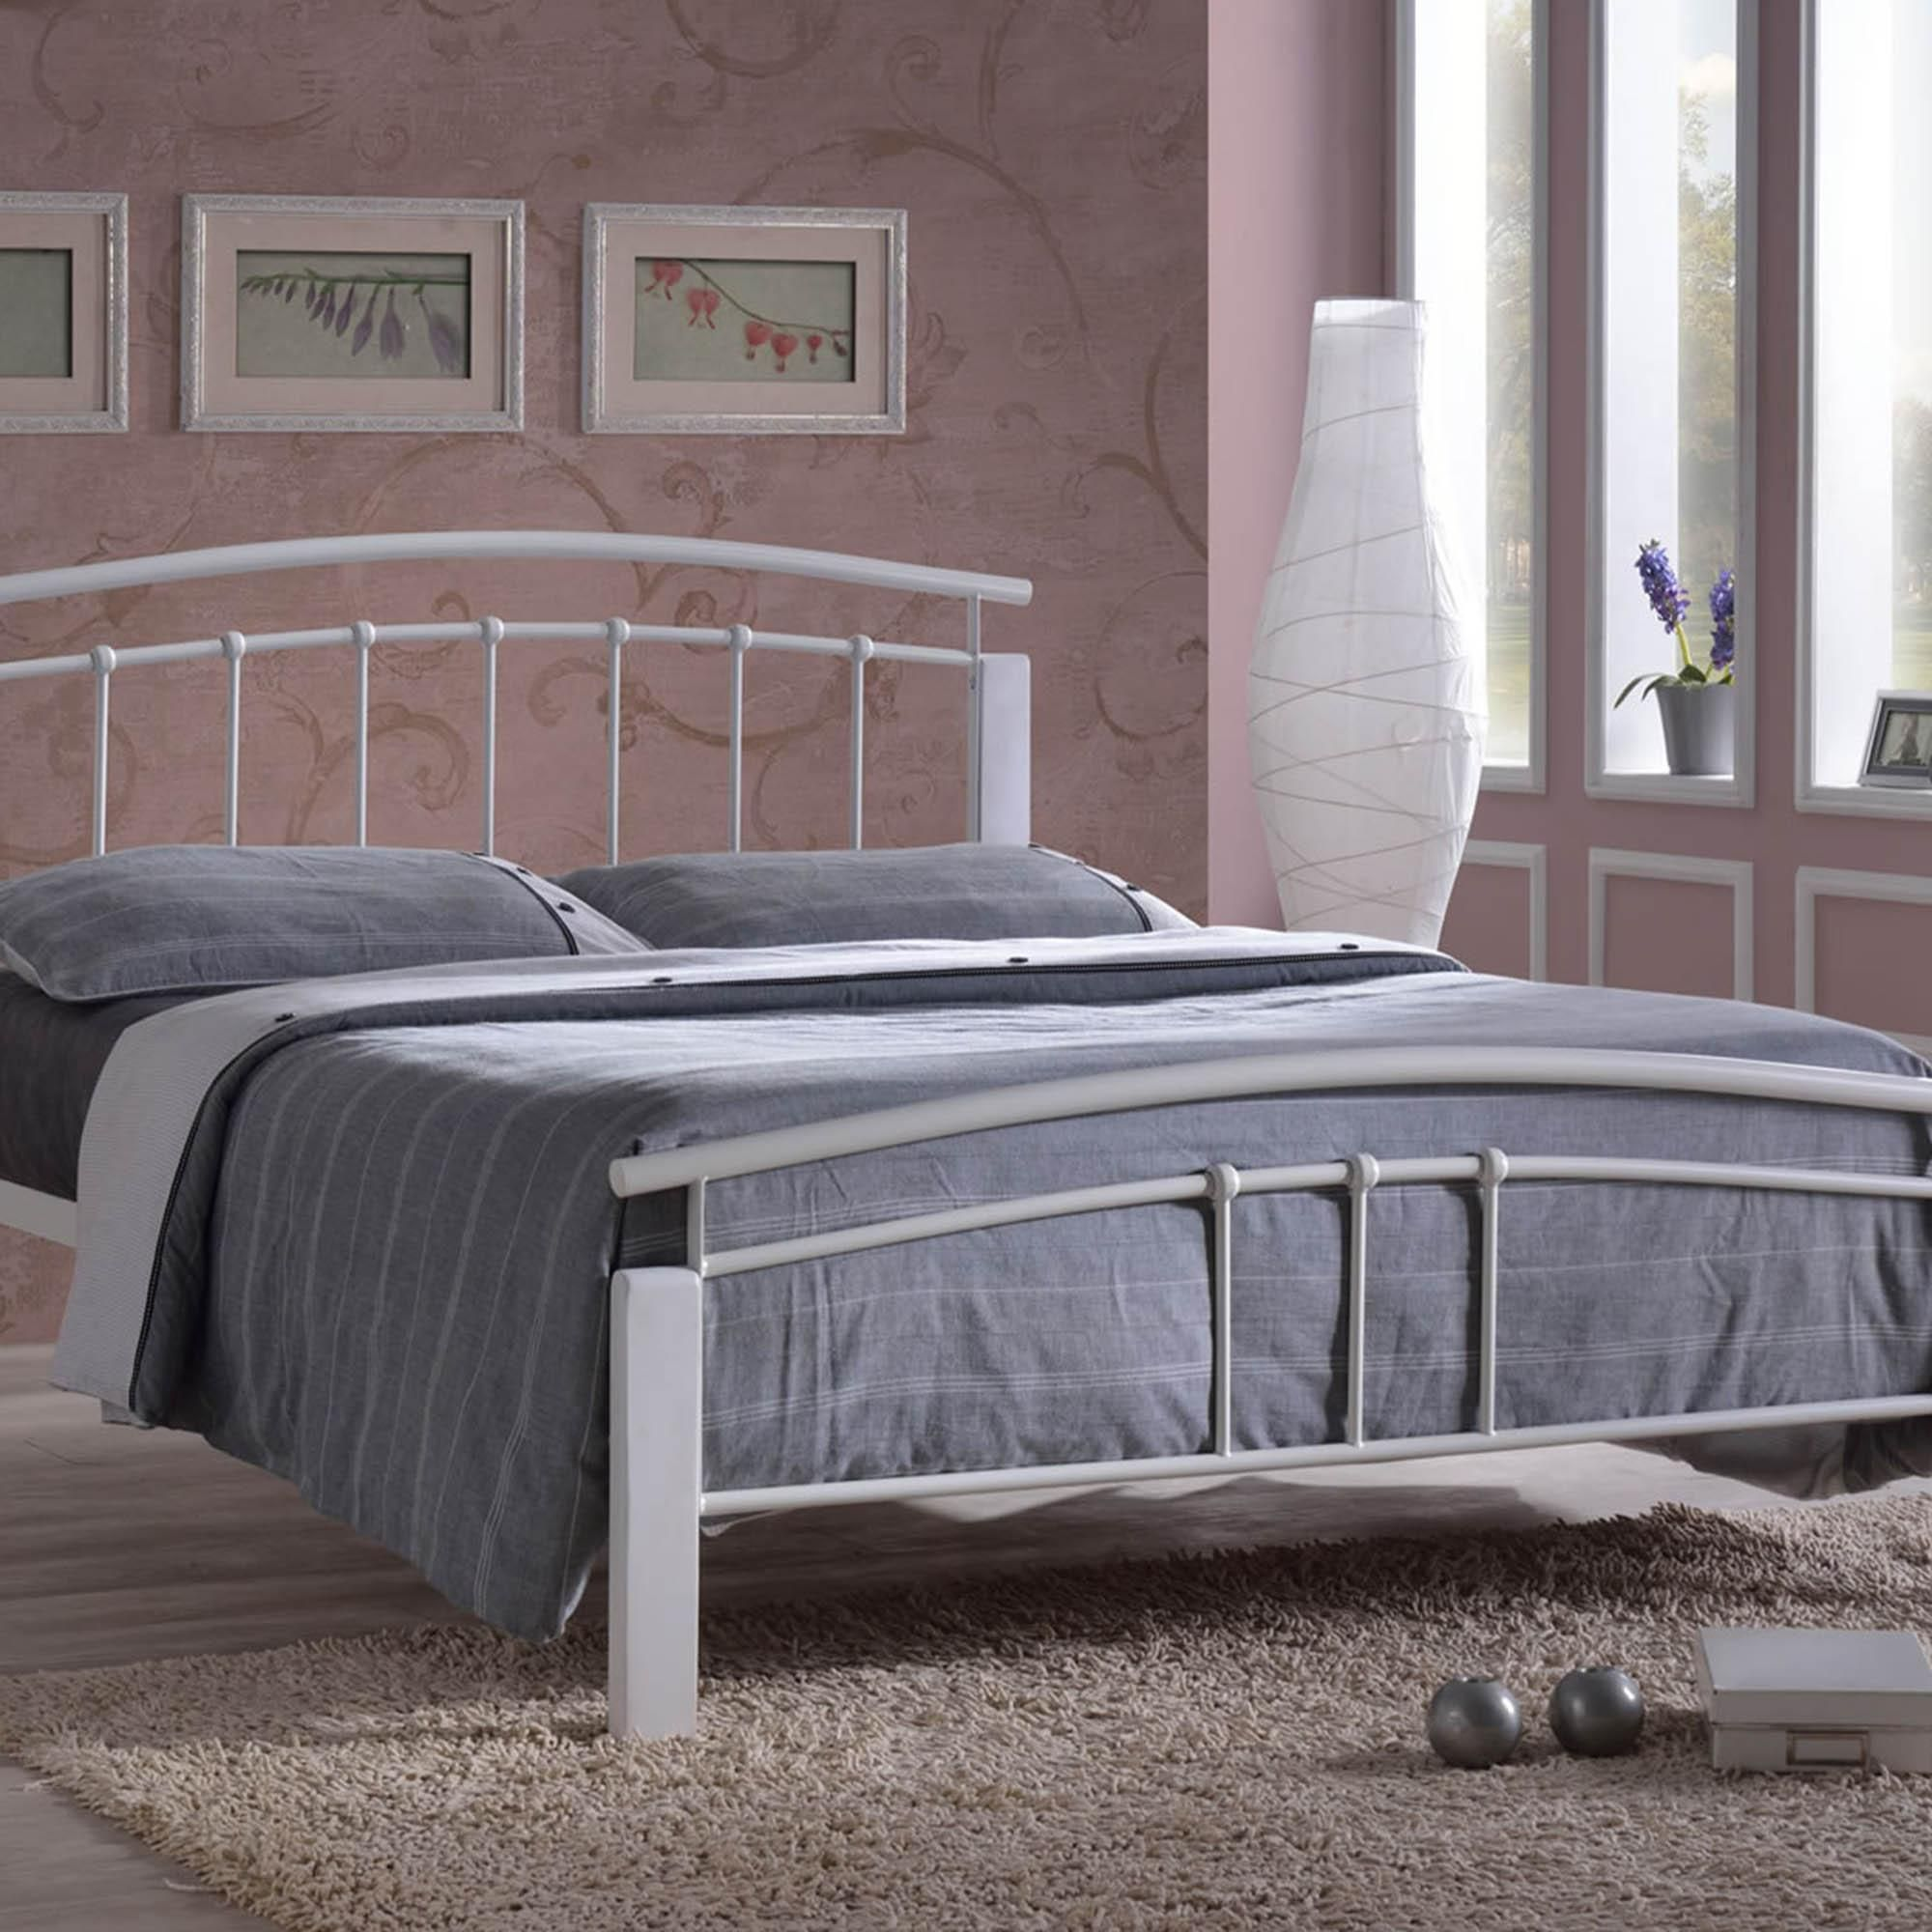 Tetras Silver and White Bedstead White metal bed, White